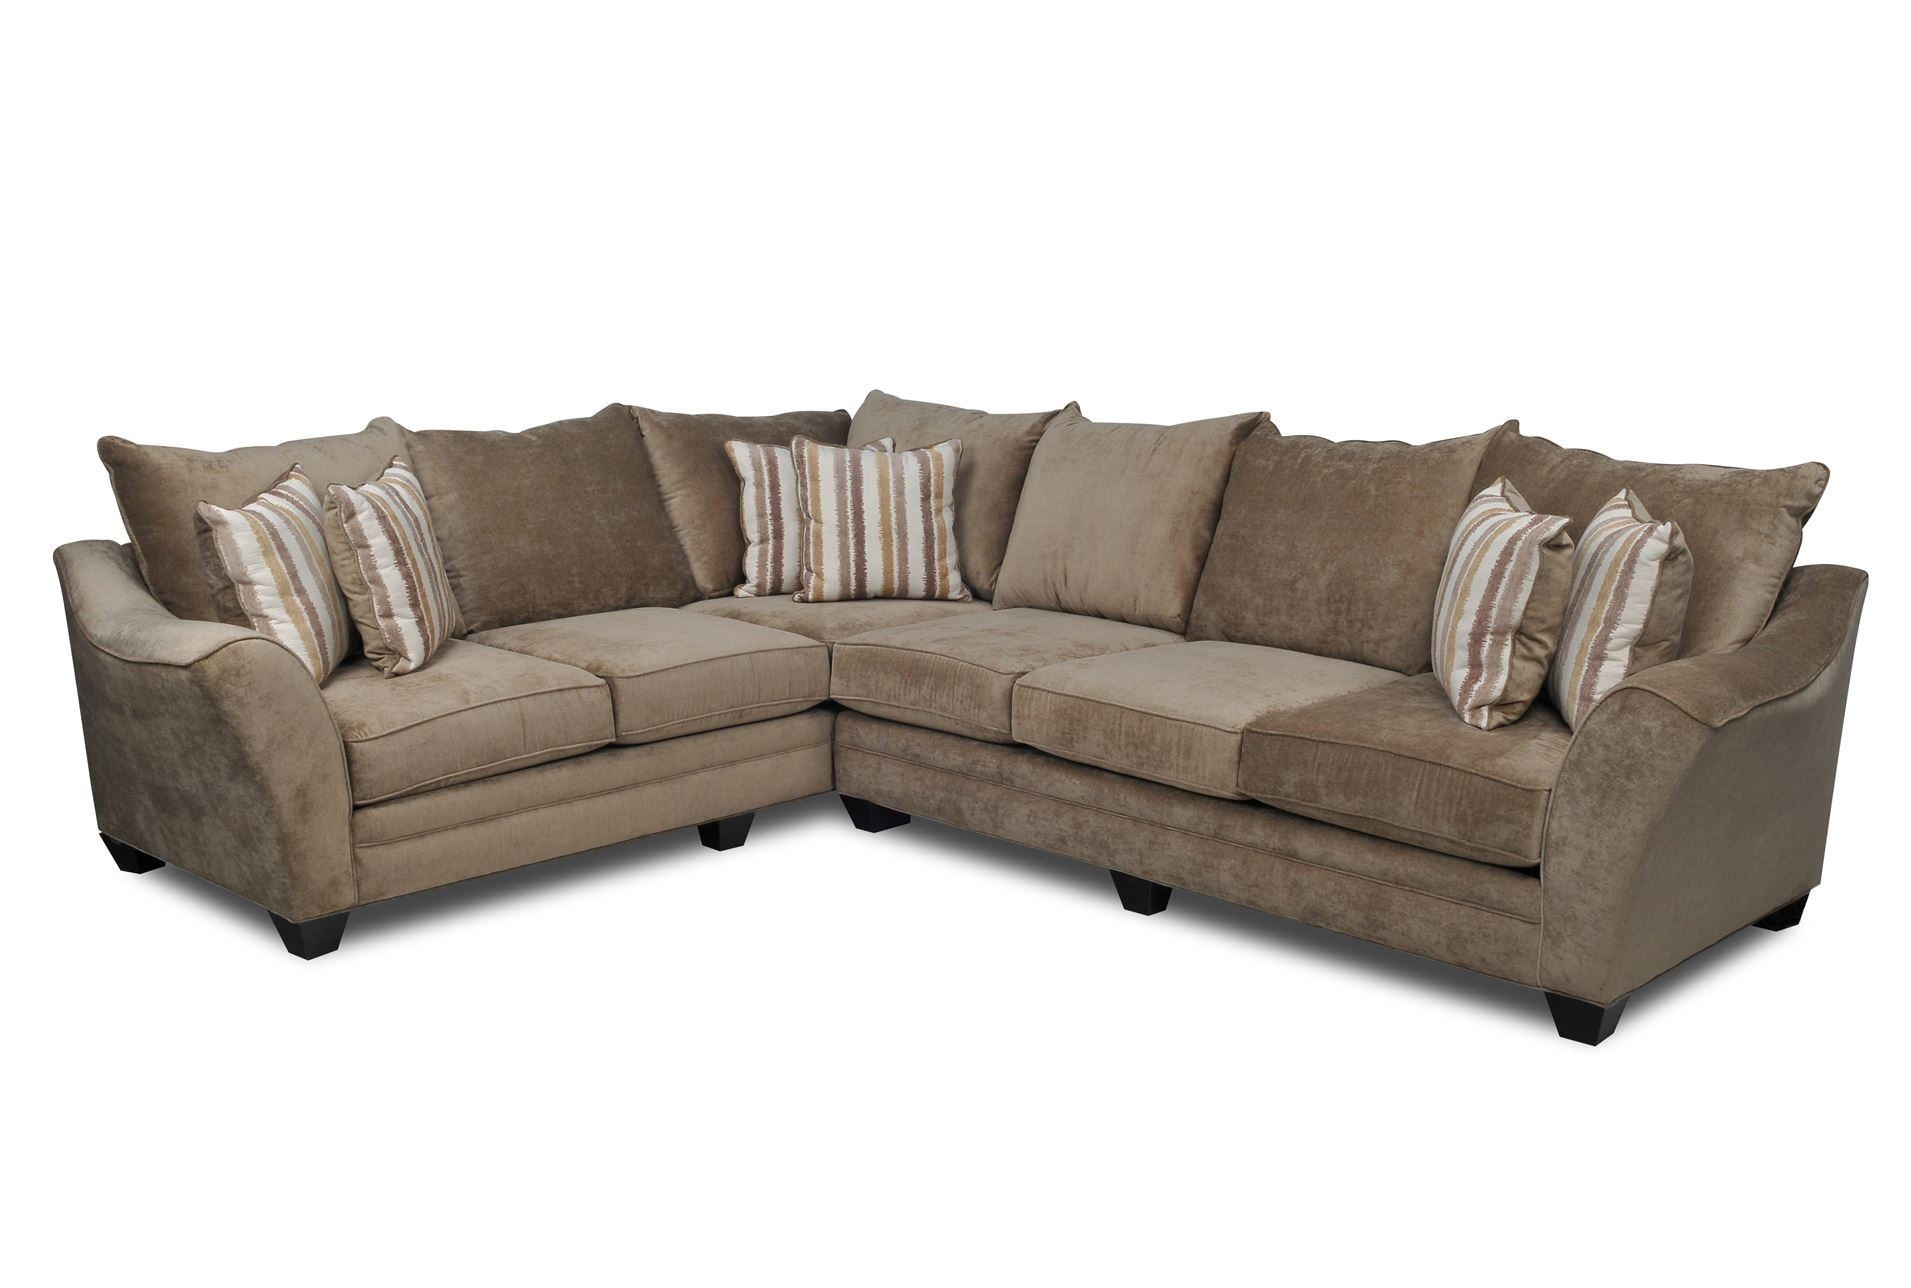 Belleview Taupe 2 Piece Sectional To Be Seasons And Beautiful Pertaining To Angled Chaise Sofa (Image 7 of 15)